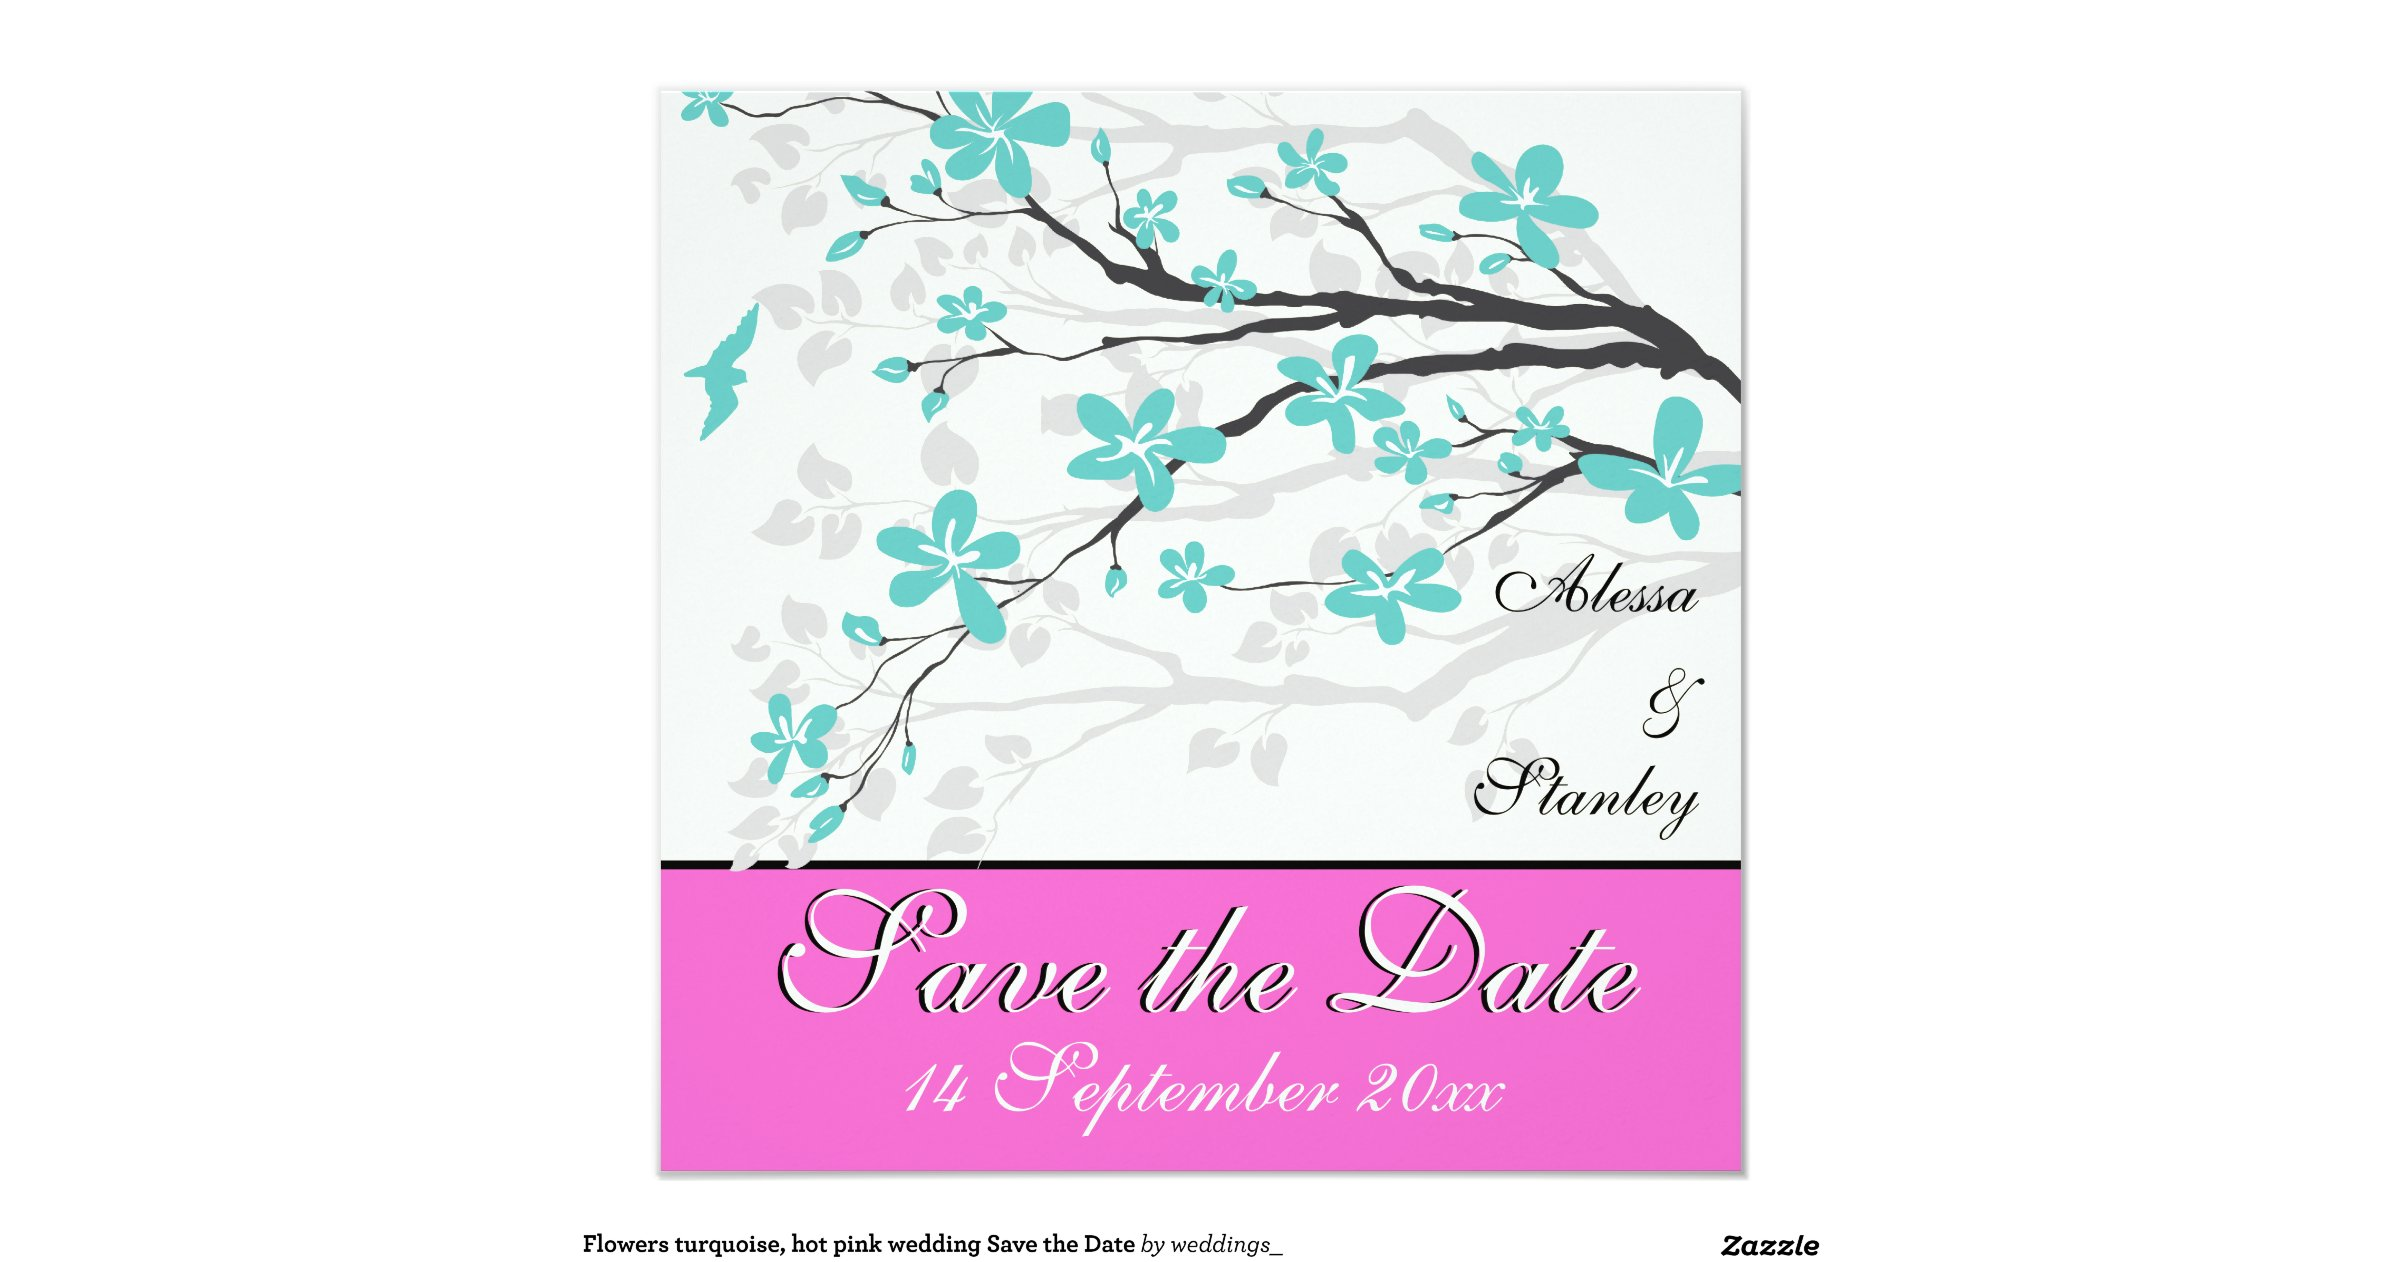 Turquoise And Pink Wedding Invitations: Flowers_turquoise_hot_pink_wedding_save_the_date